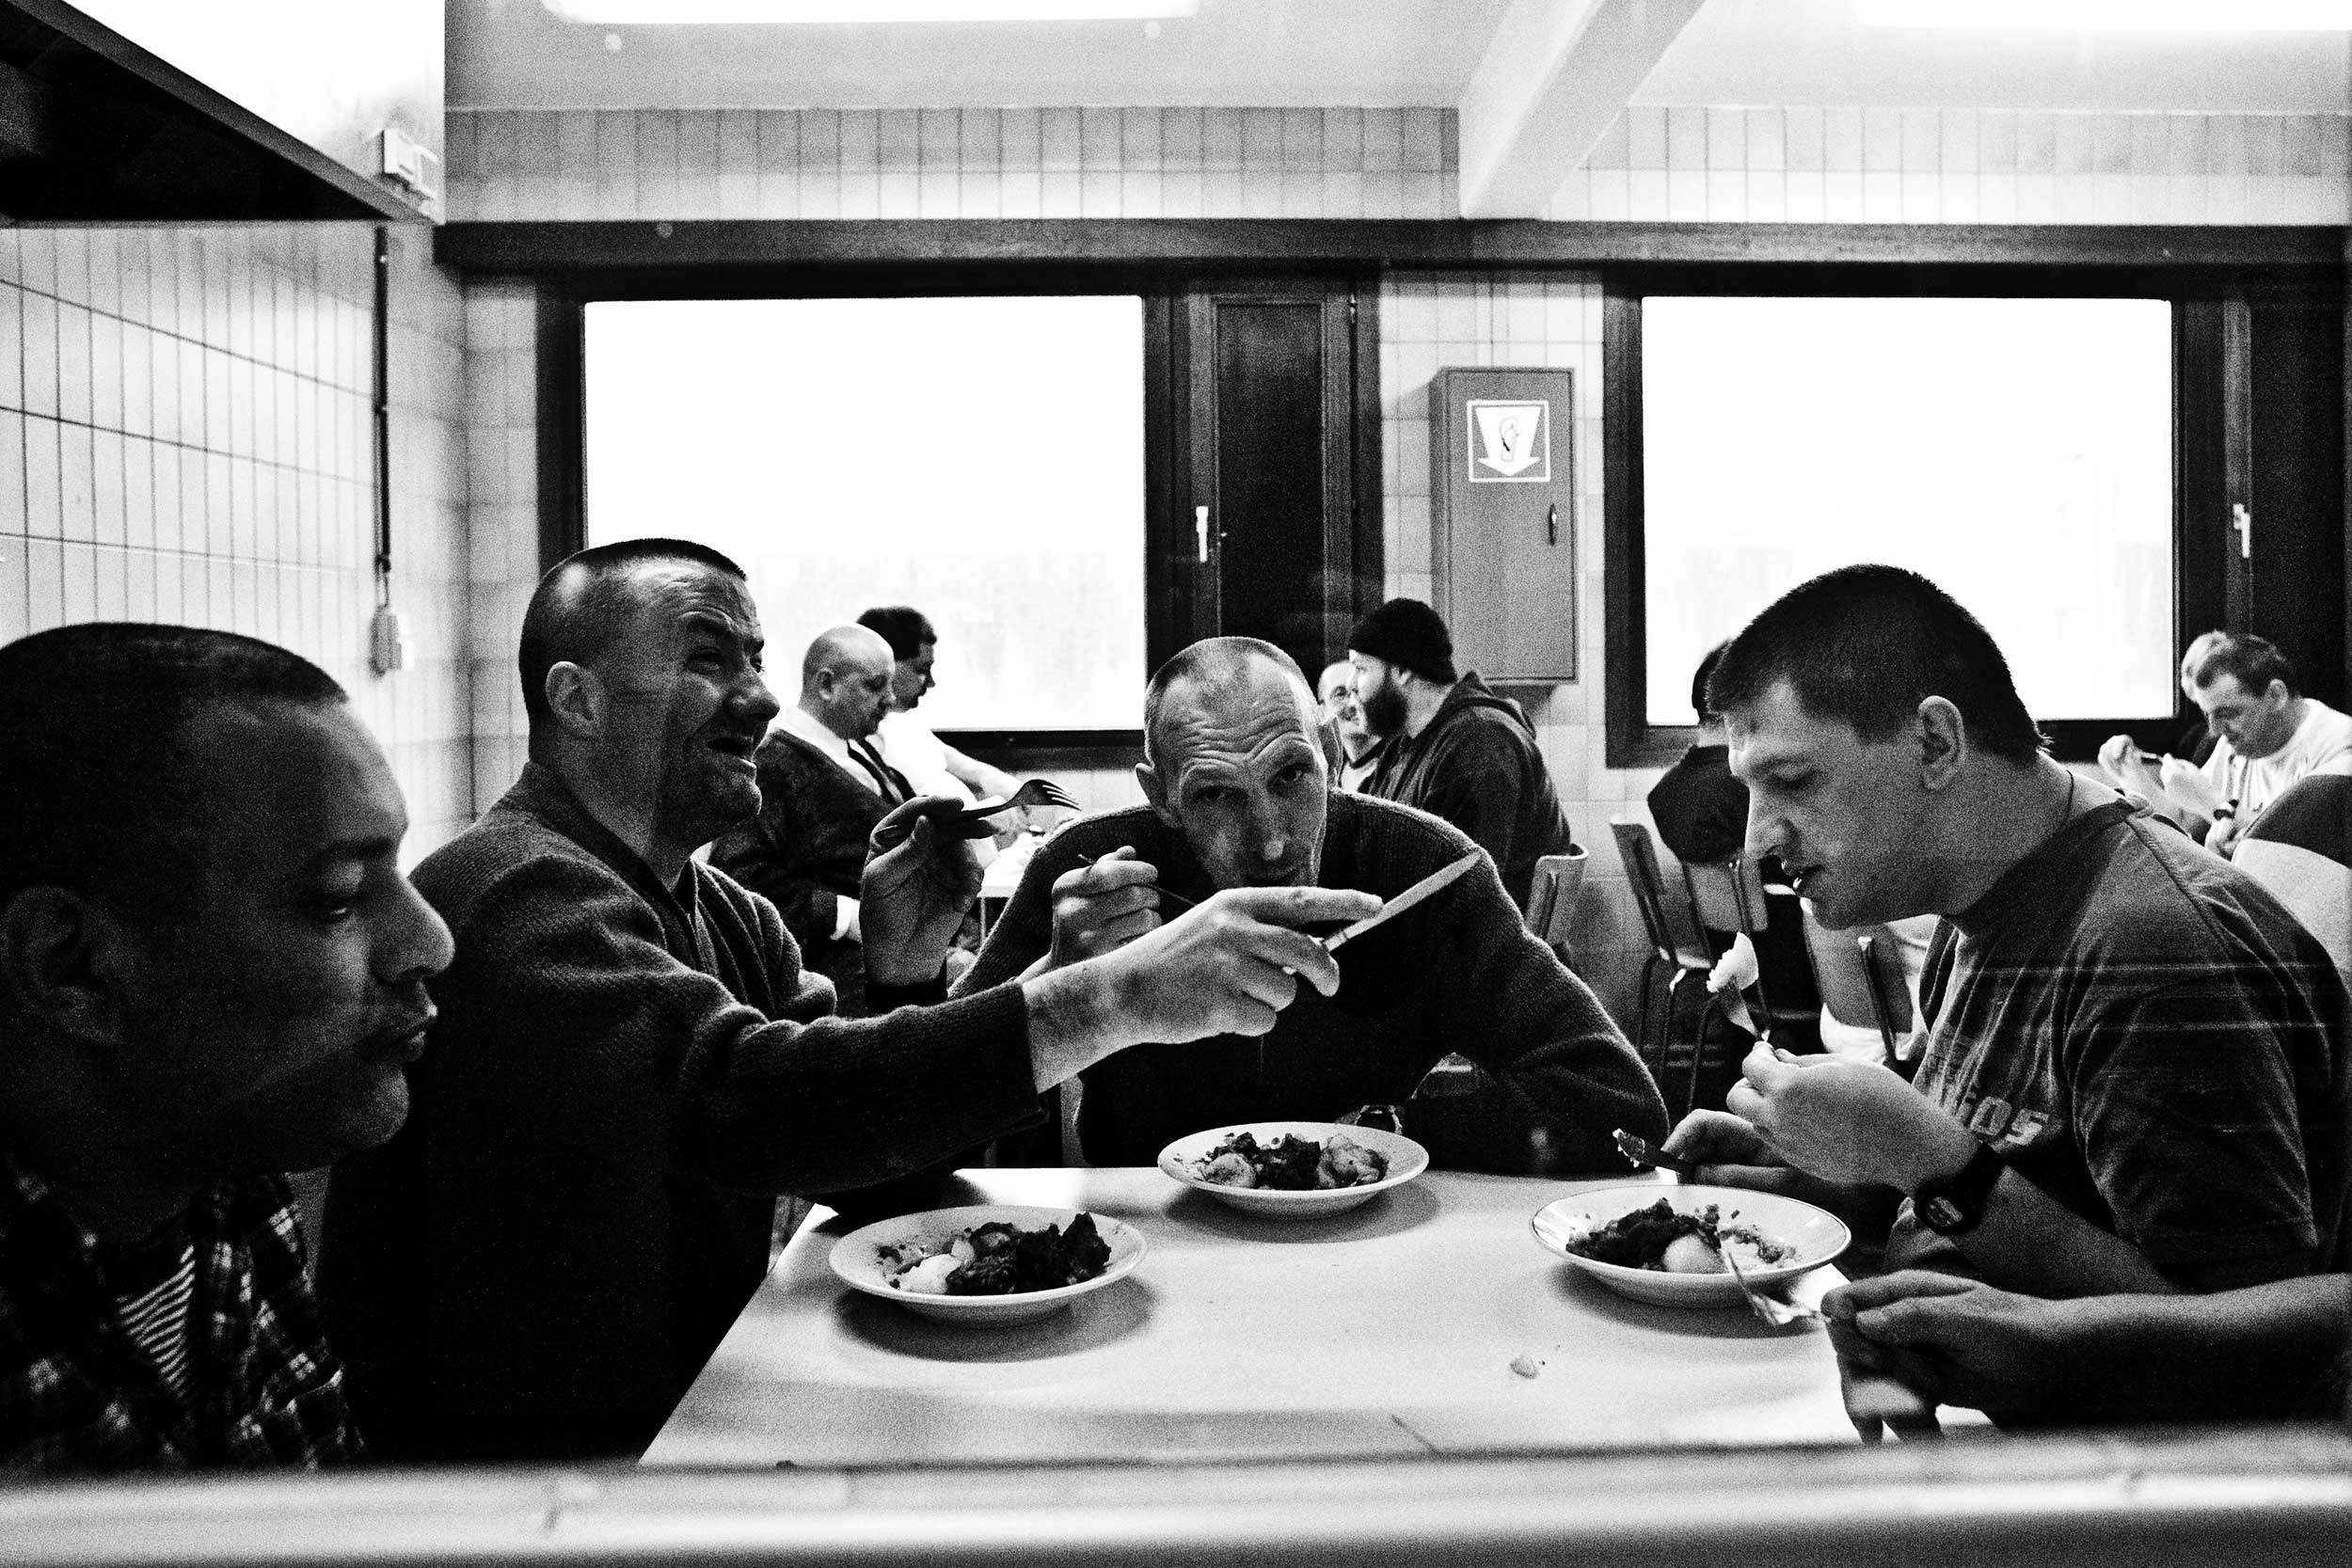 Canteen, inside the prison for mentally disabled prisoners in Paifve, Belgium. March 2011.